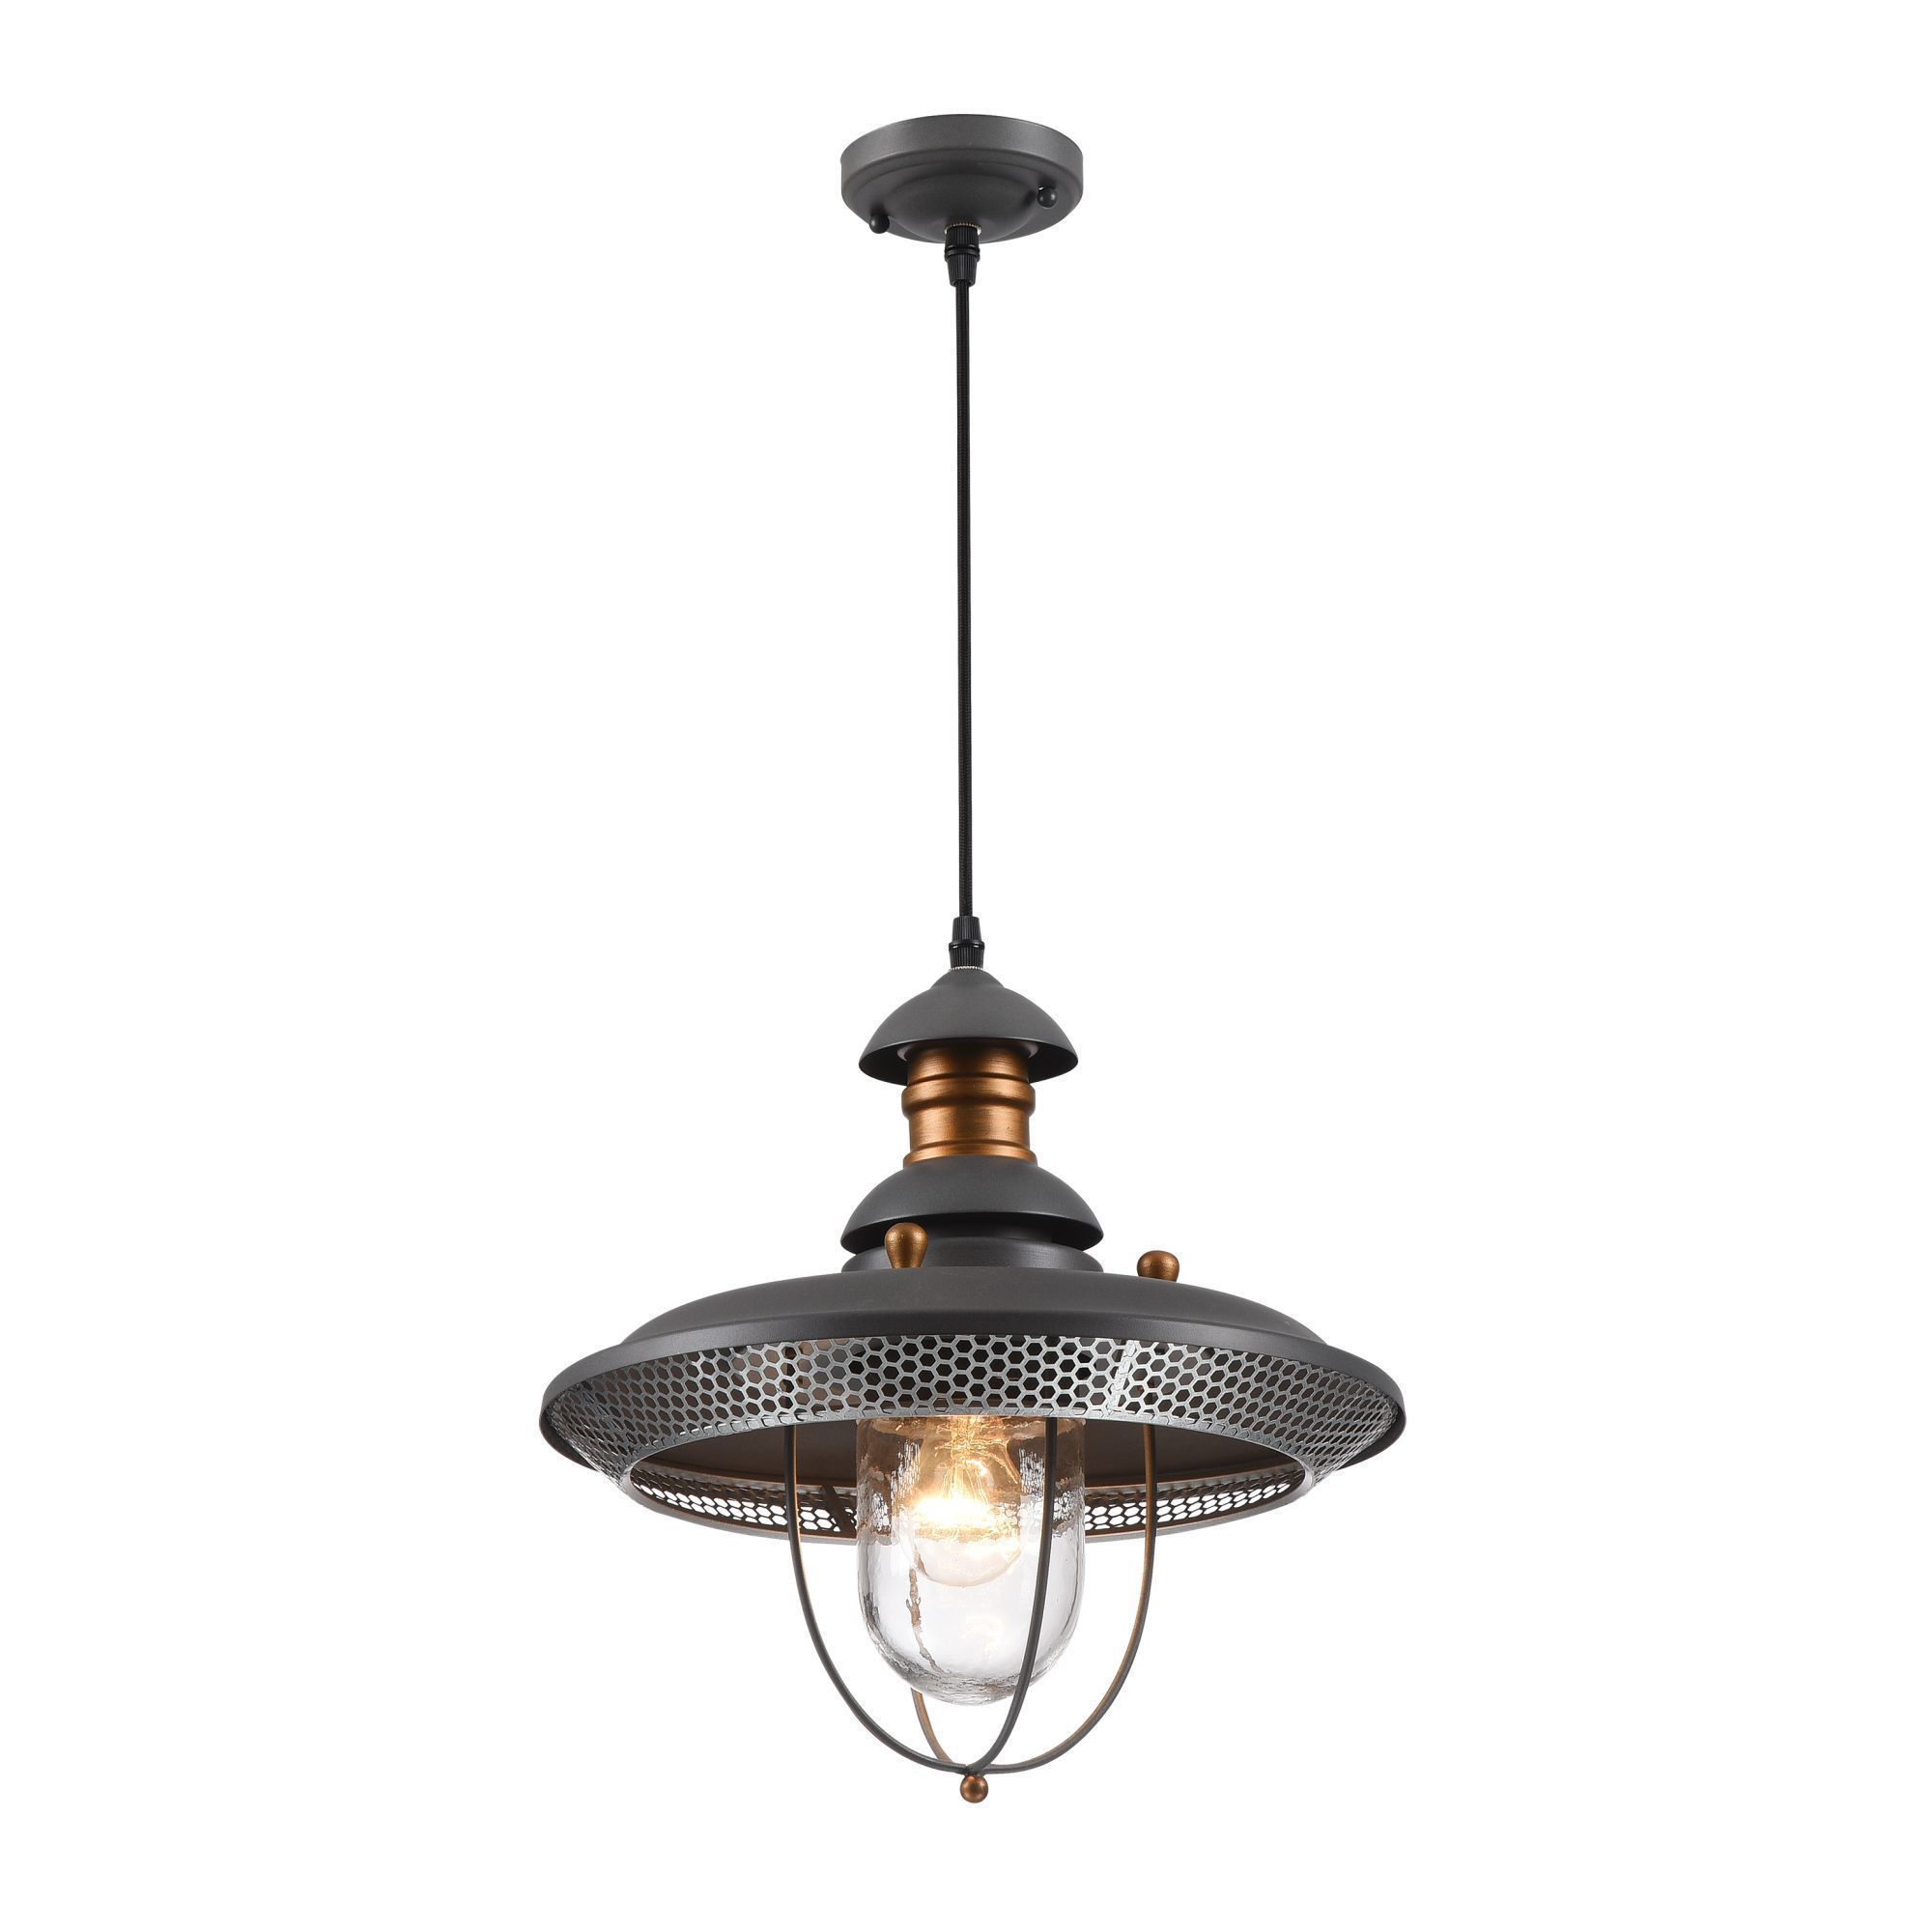 Garden Lamp 3d Model: Pendant Lamp Magnificent Mile S105-106-41-G 3D Model 1